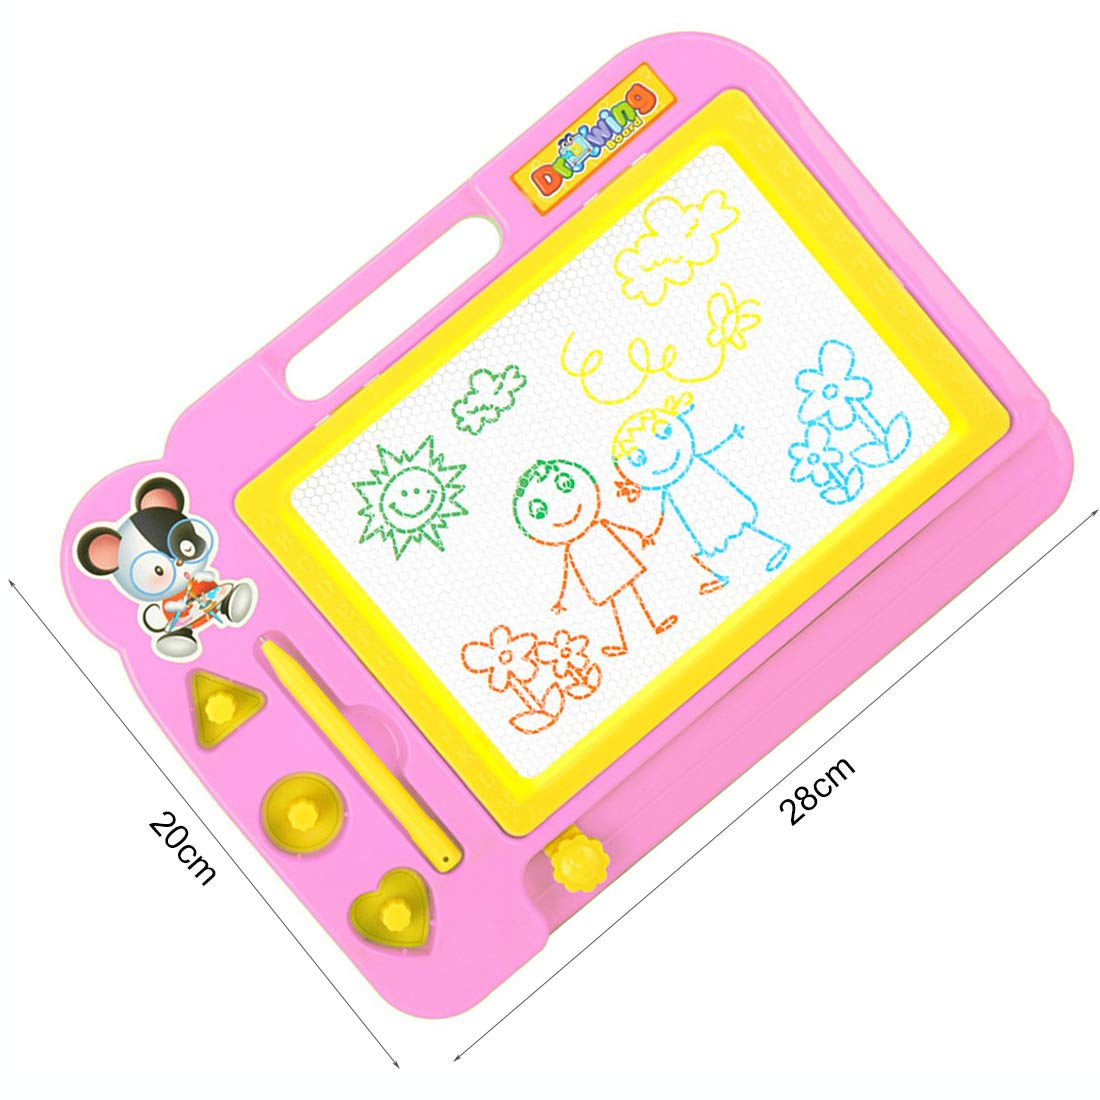 ekuzi Magnetic Drawing Board Erasable Colorful Magna Doodle Drawing Board Educational Toys for Kids,Pink